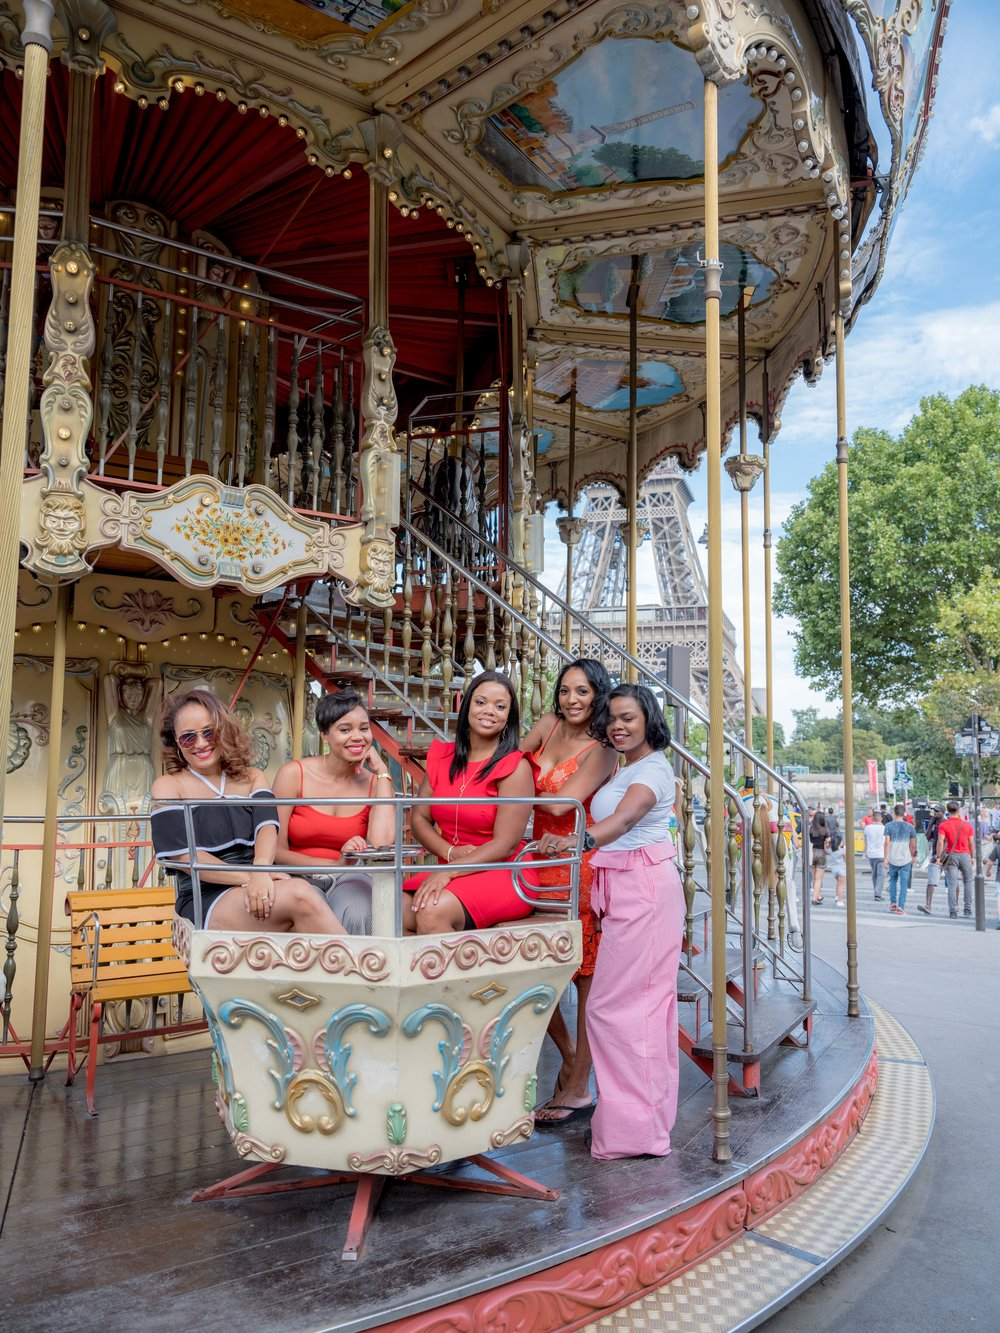 raquel & friends - I absolutely loved meeting these ladies visiting Paris from Cleveland. They were friendly, charming, and filled with energy and positive vibes. We had tons of fun in the Eiffel Tower area, especially photographing the carousel, which dates to the Belle Epoque. Thank you ladies for choosing me to capture your time in Paris!See more images here